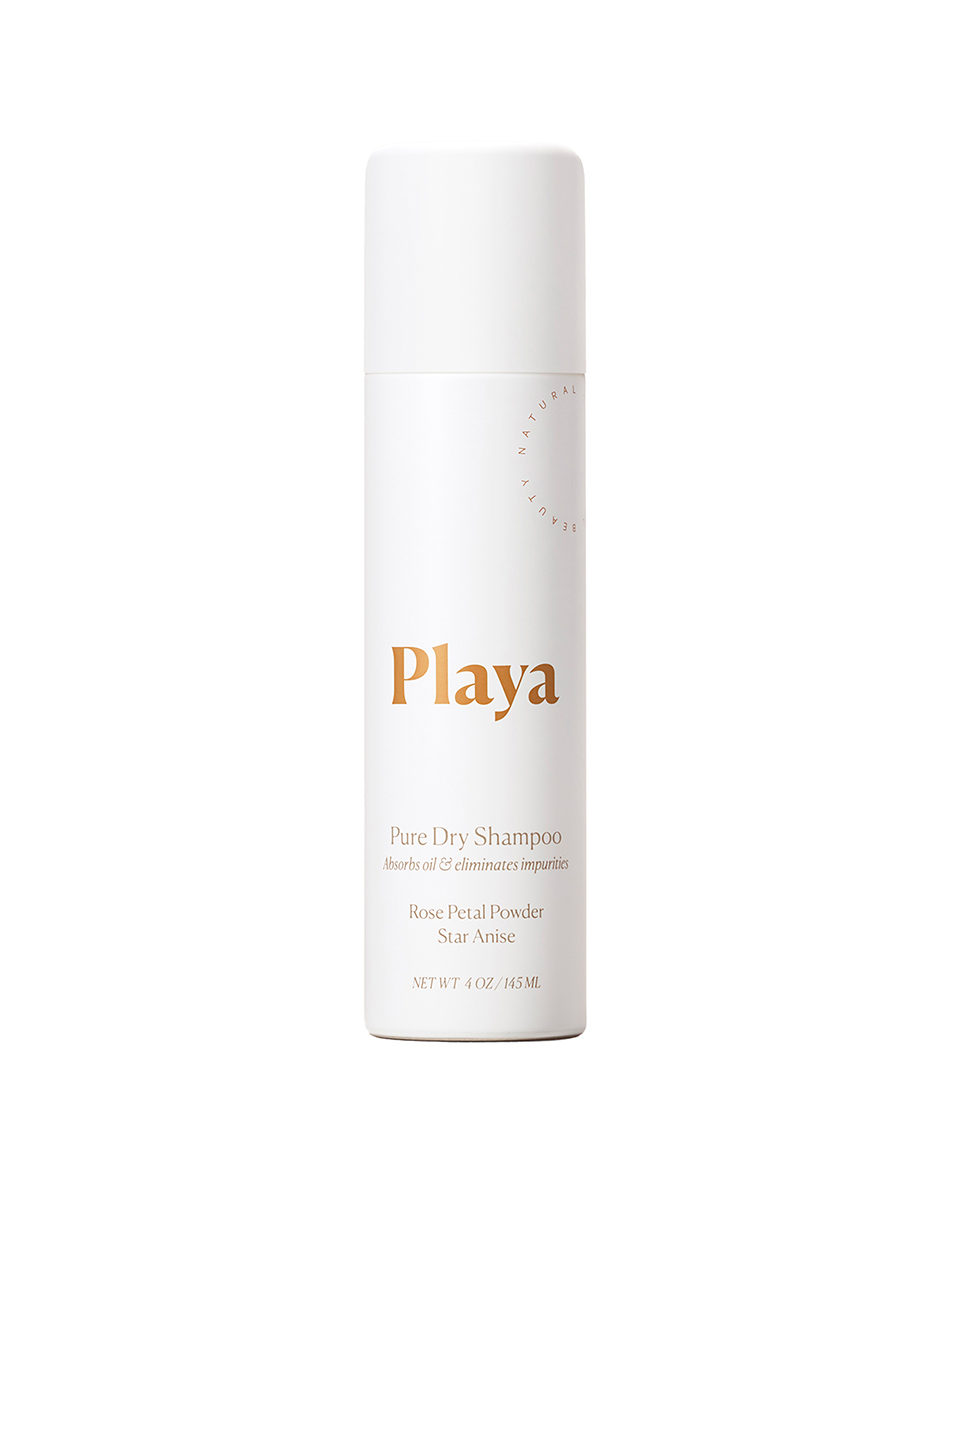 Playa Pure Dry Shampoo in